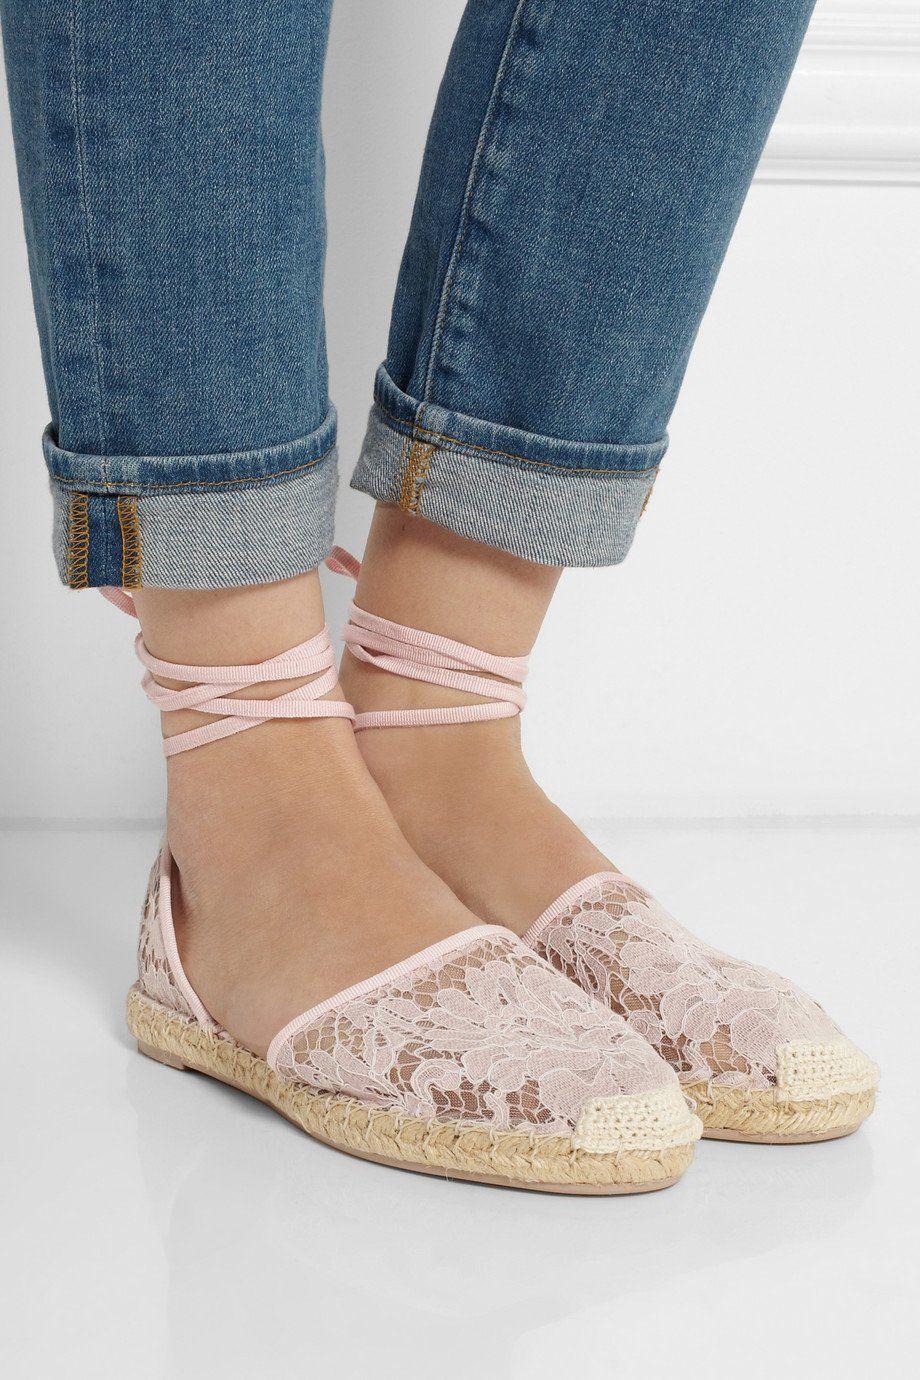 Valentino Lace Espadrilles in Pink - Lyst